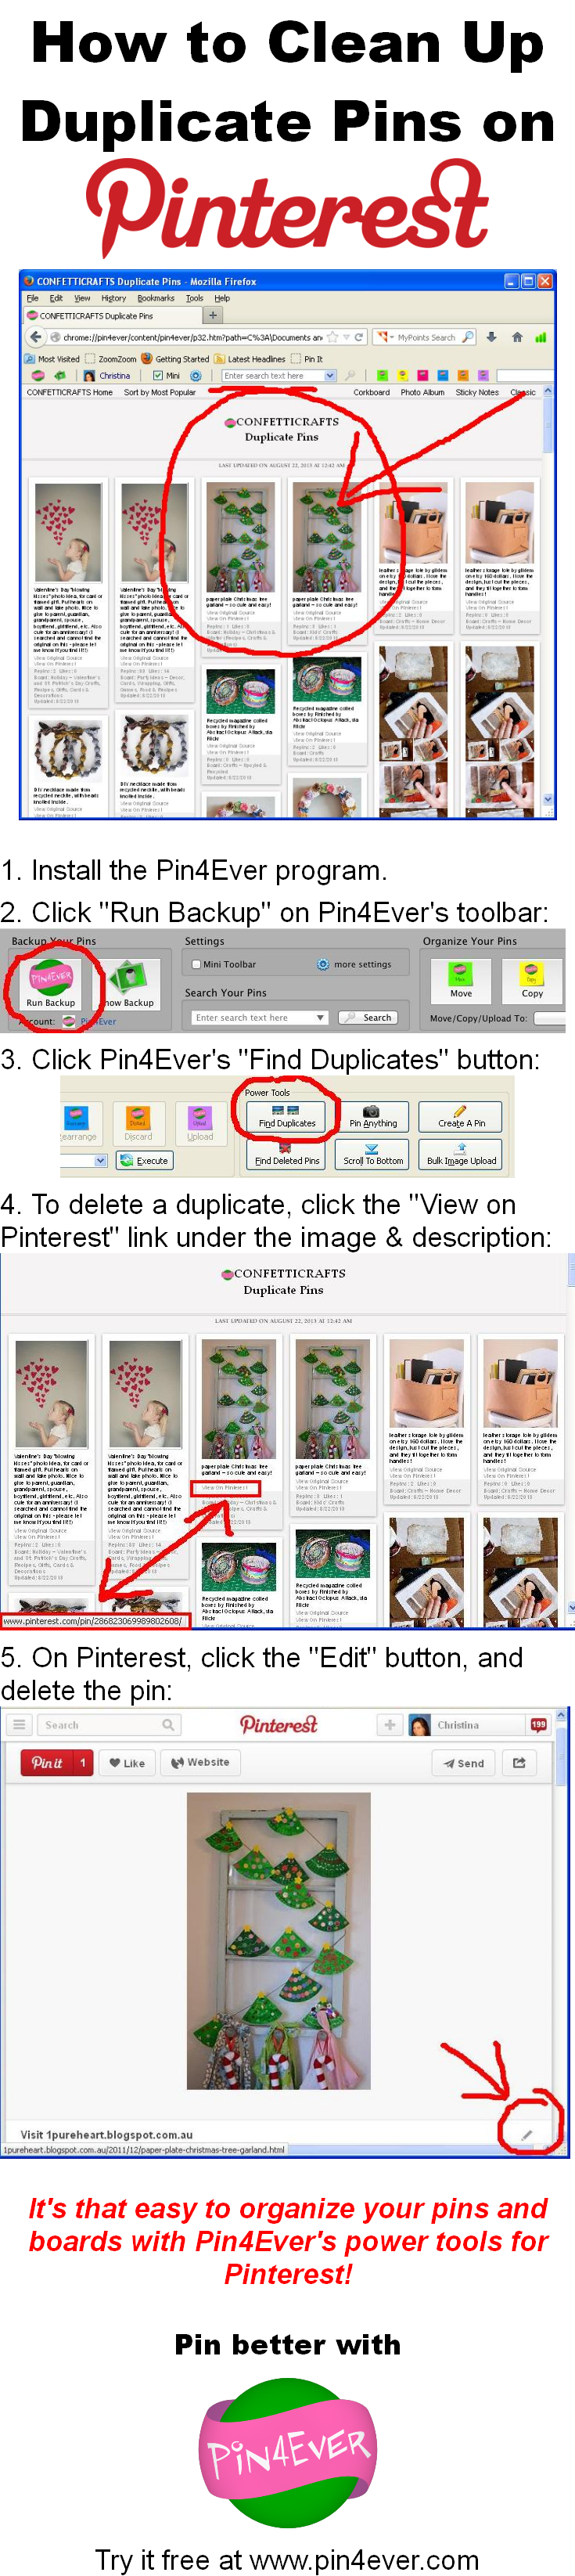 How To Clean Up Duplicate Pins On Pinterest, Using Pin4ever's